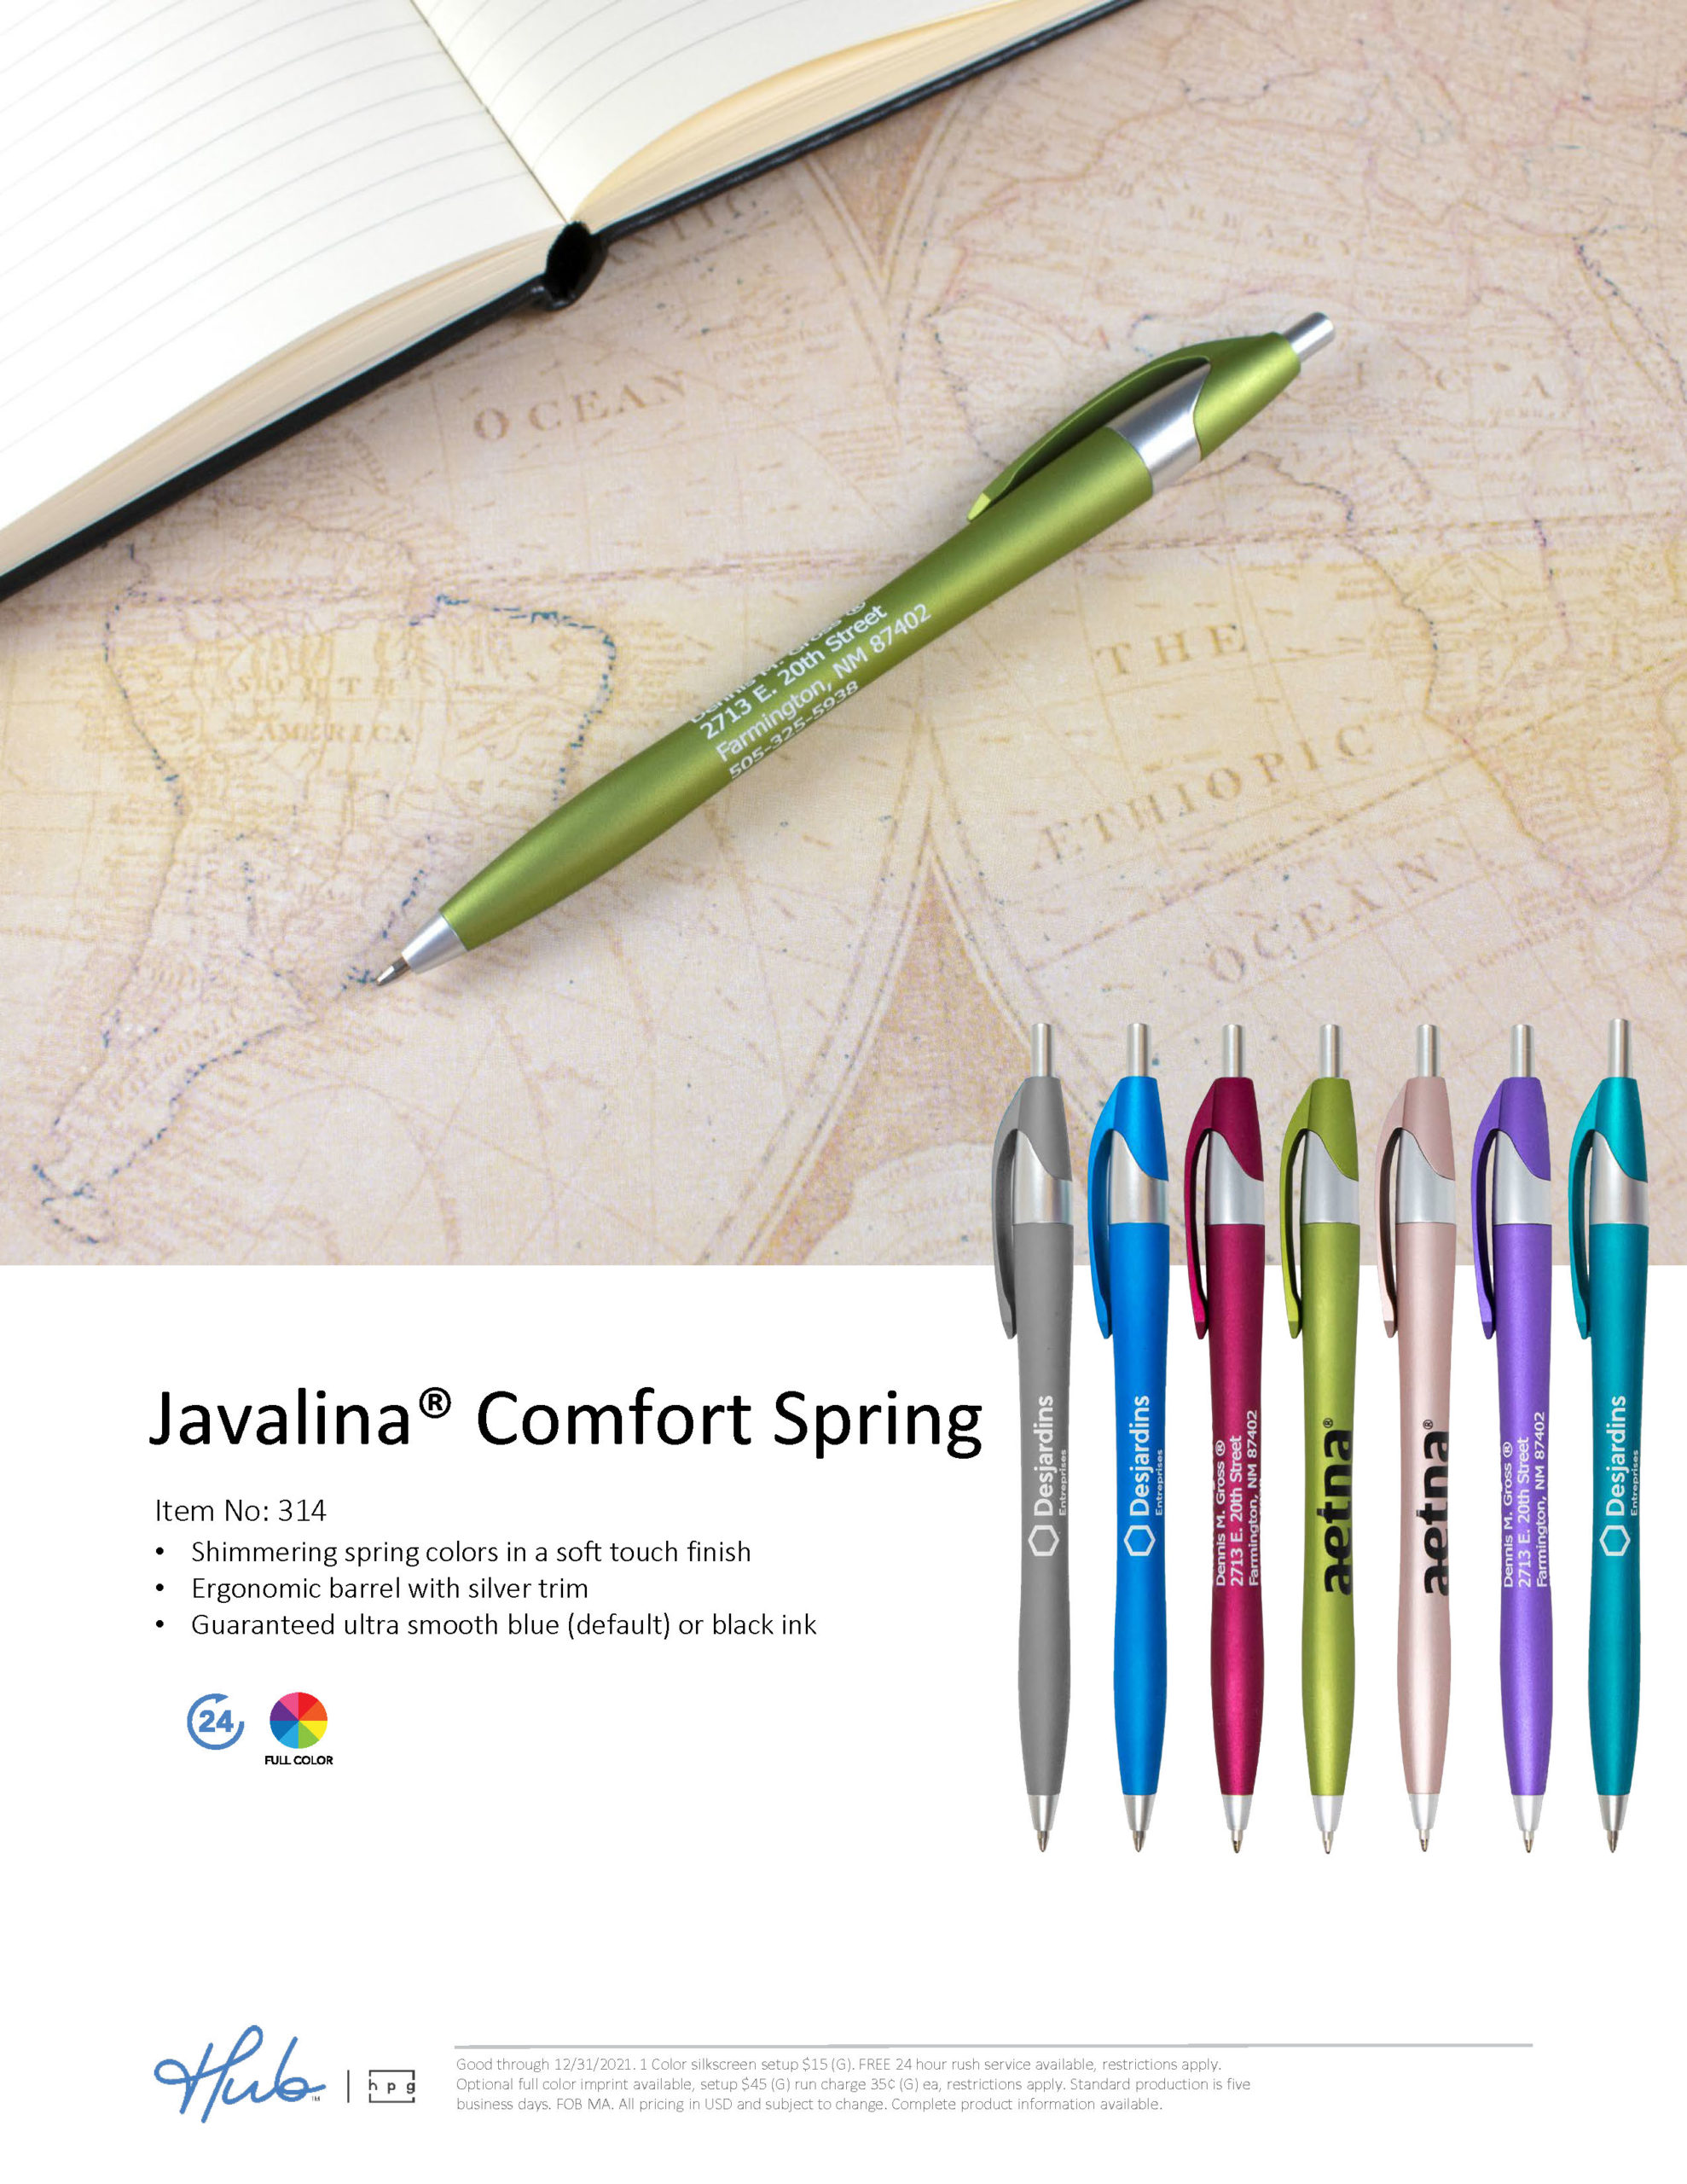 The NEW Javalina Comfort Spring pen with a soft touch finish